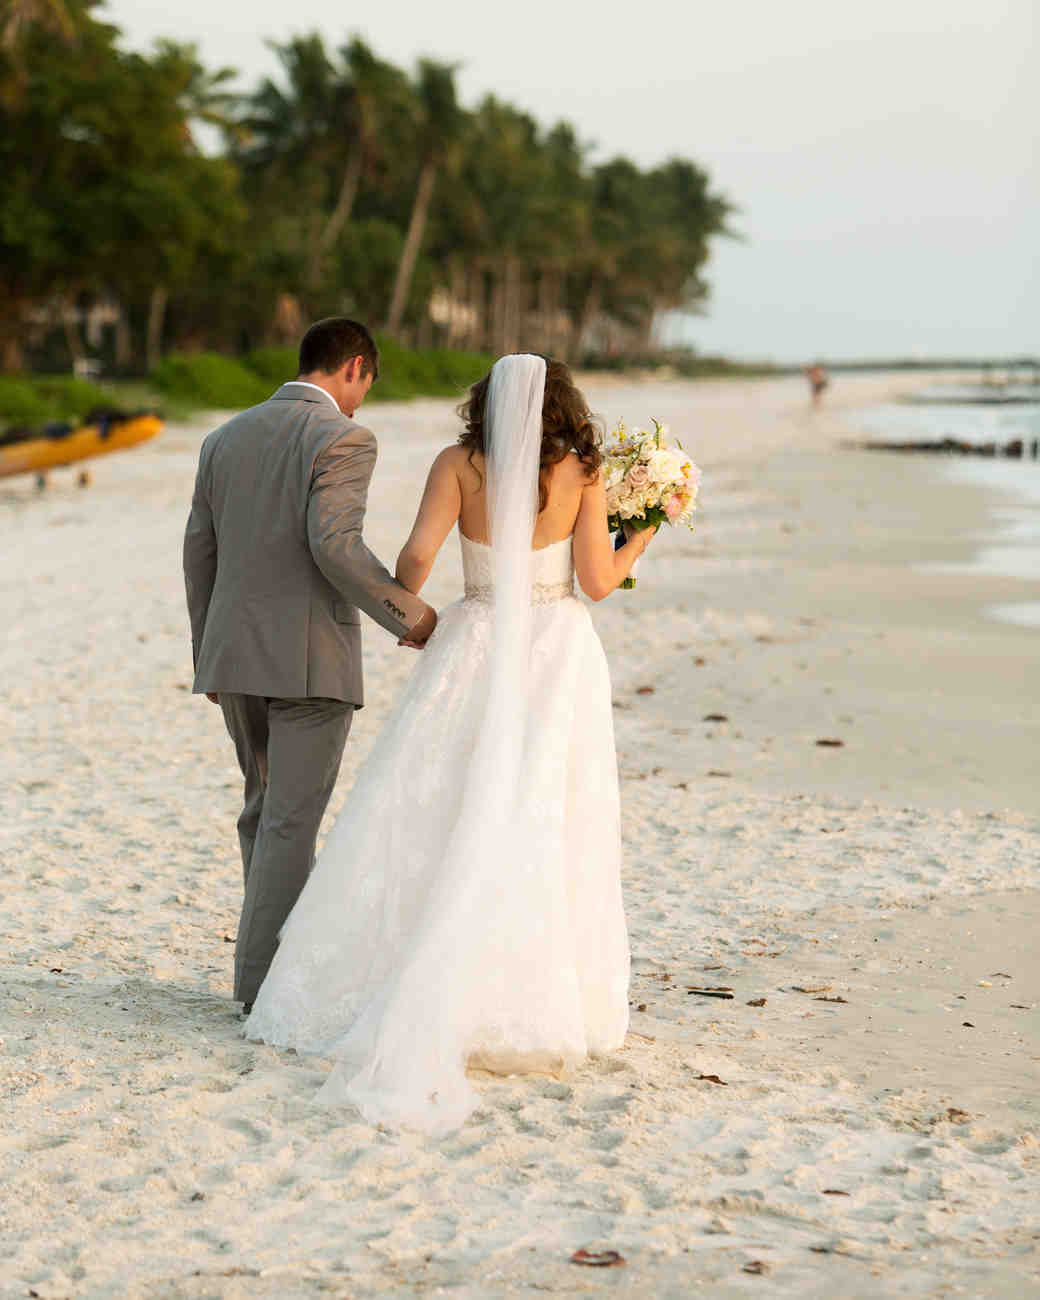 erin-ryan-florida-wedding-couple-beach-1035-s113010-0516.jpg